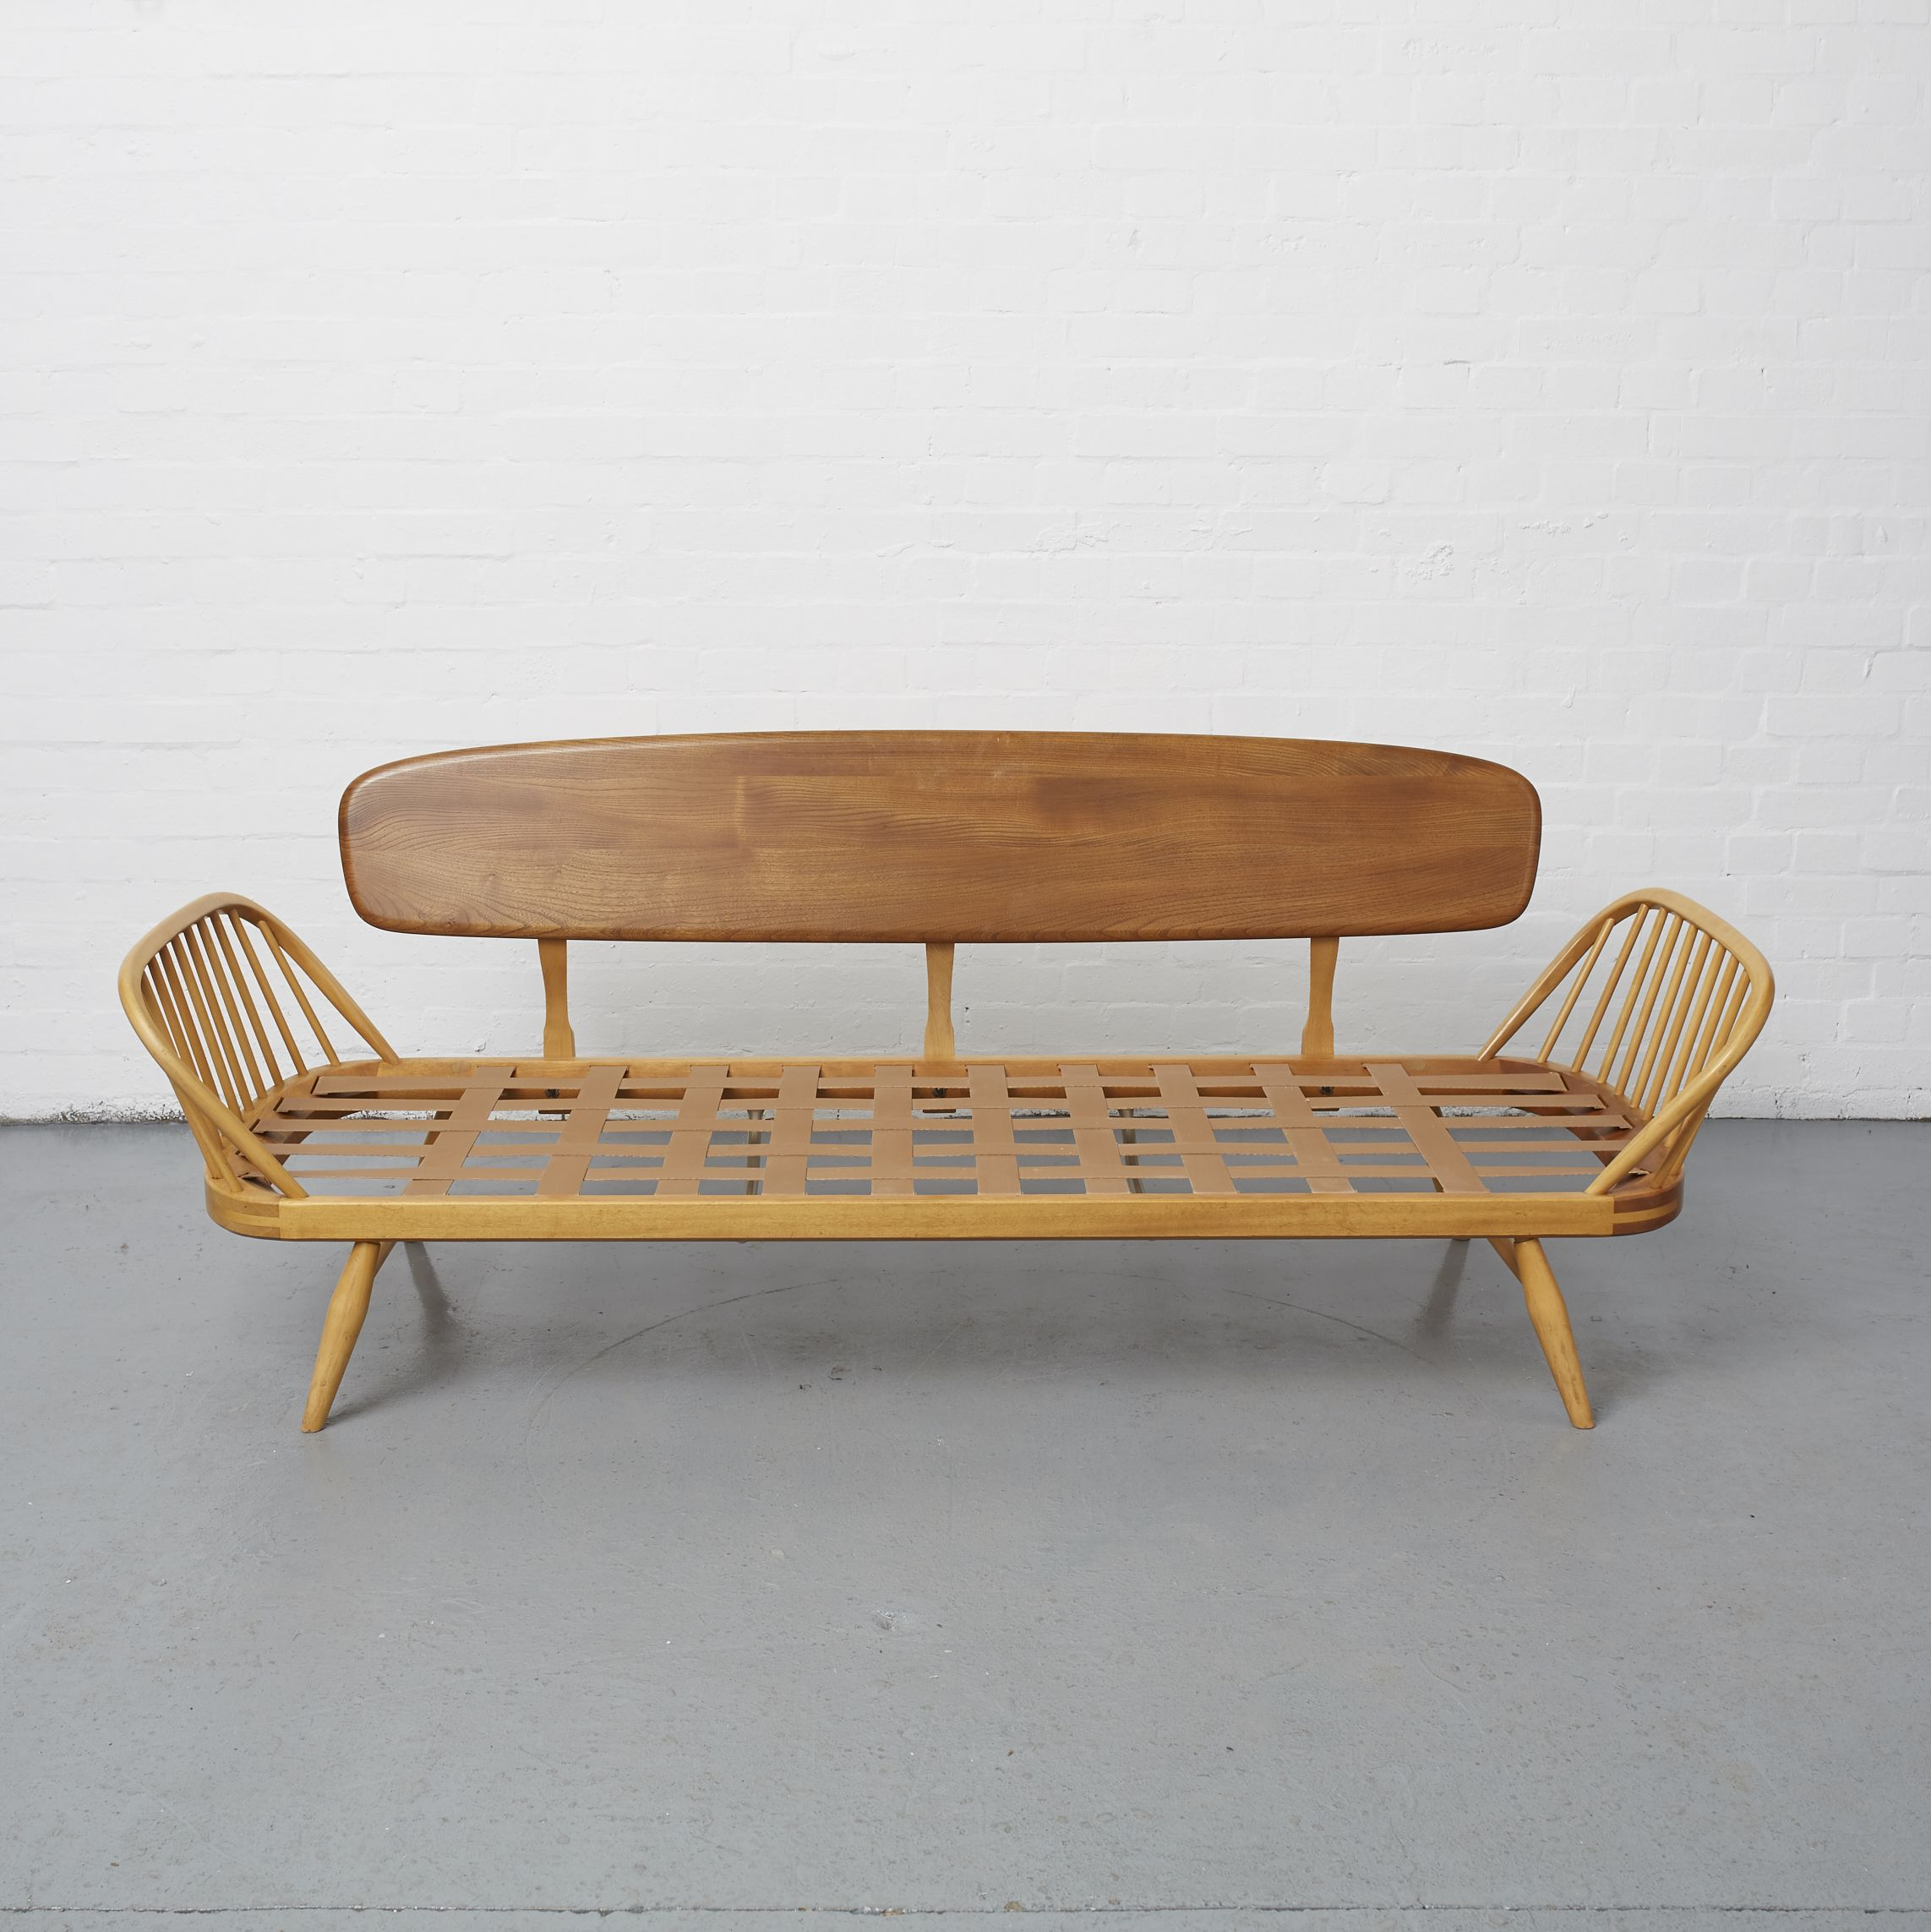 Ercol Studio Couch Vintage Frame Fully Restored In The Reloved Upholstery Workshop Ready For Bespoke Upholstery Ercol Furniture Furniture Ercol